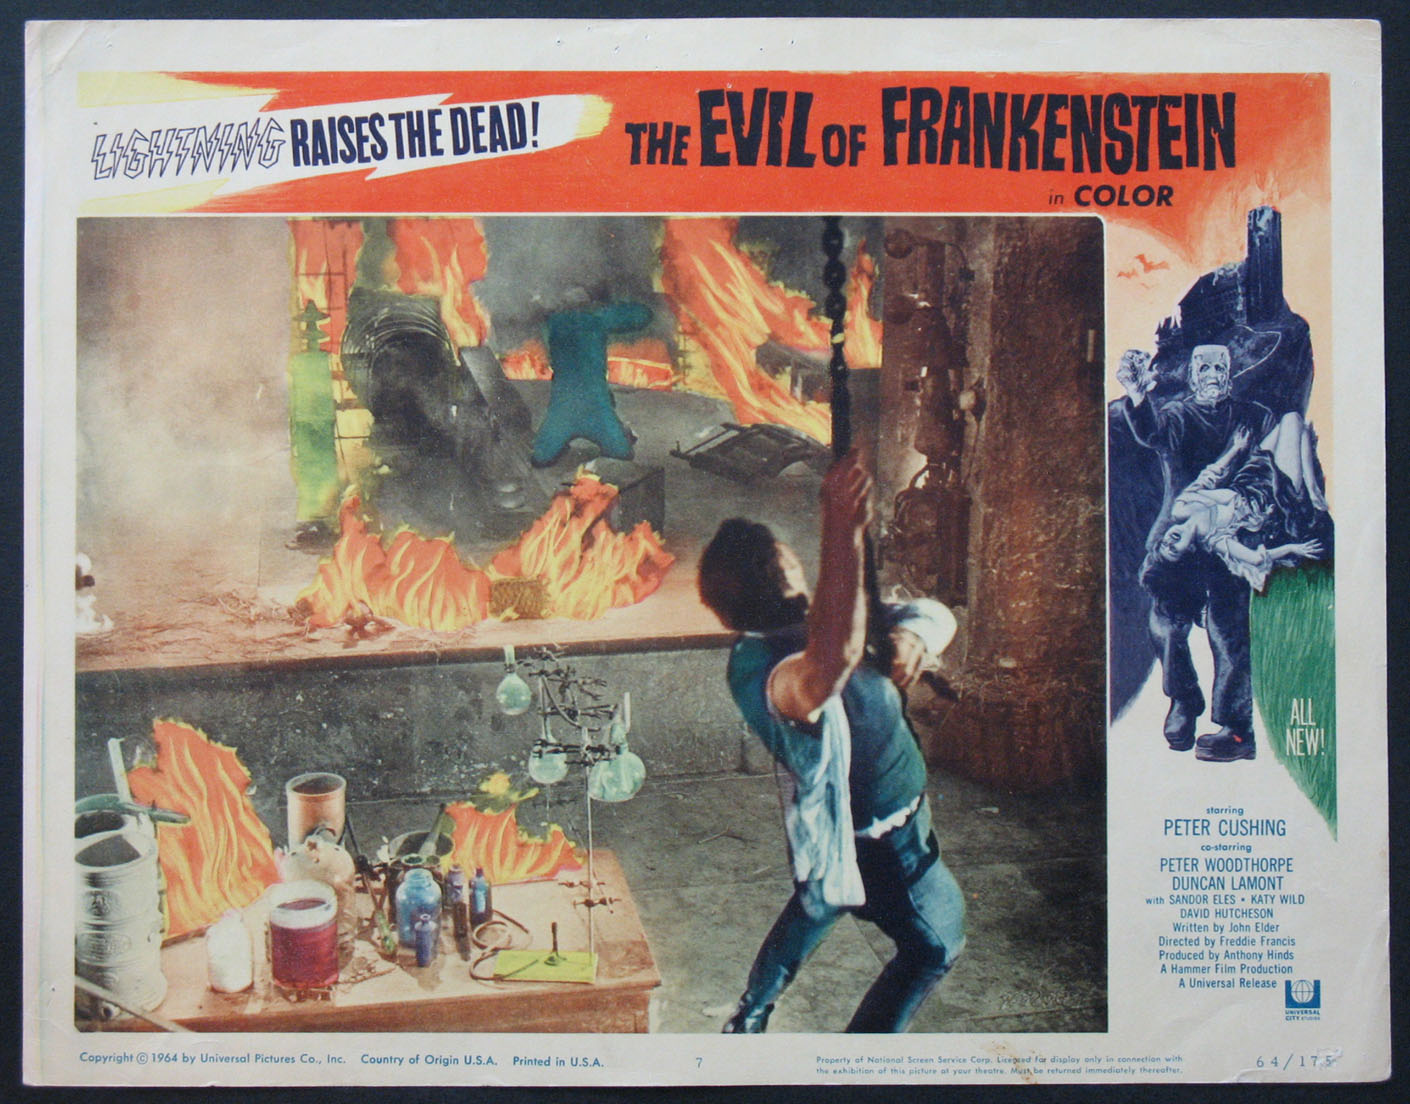 EVIL OF FRANKENSTEIN, THE @ FilmPosters.com